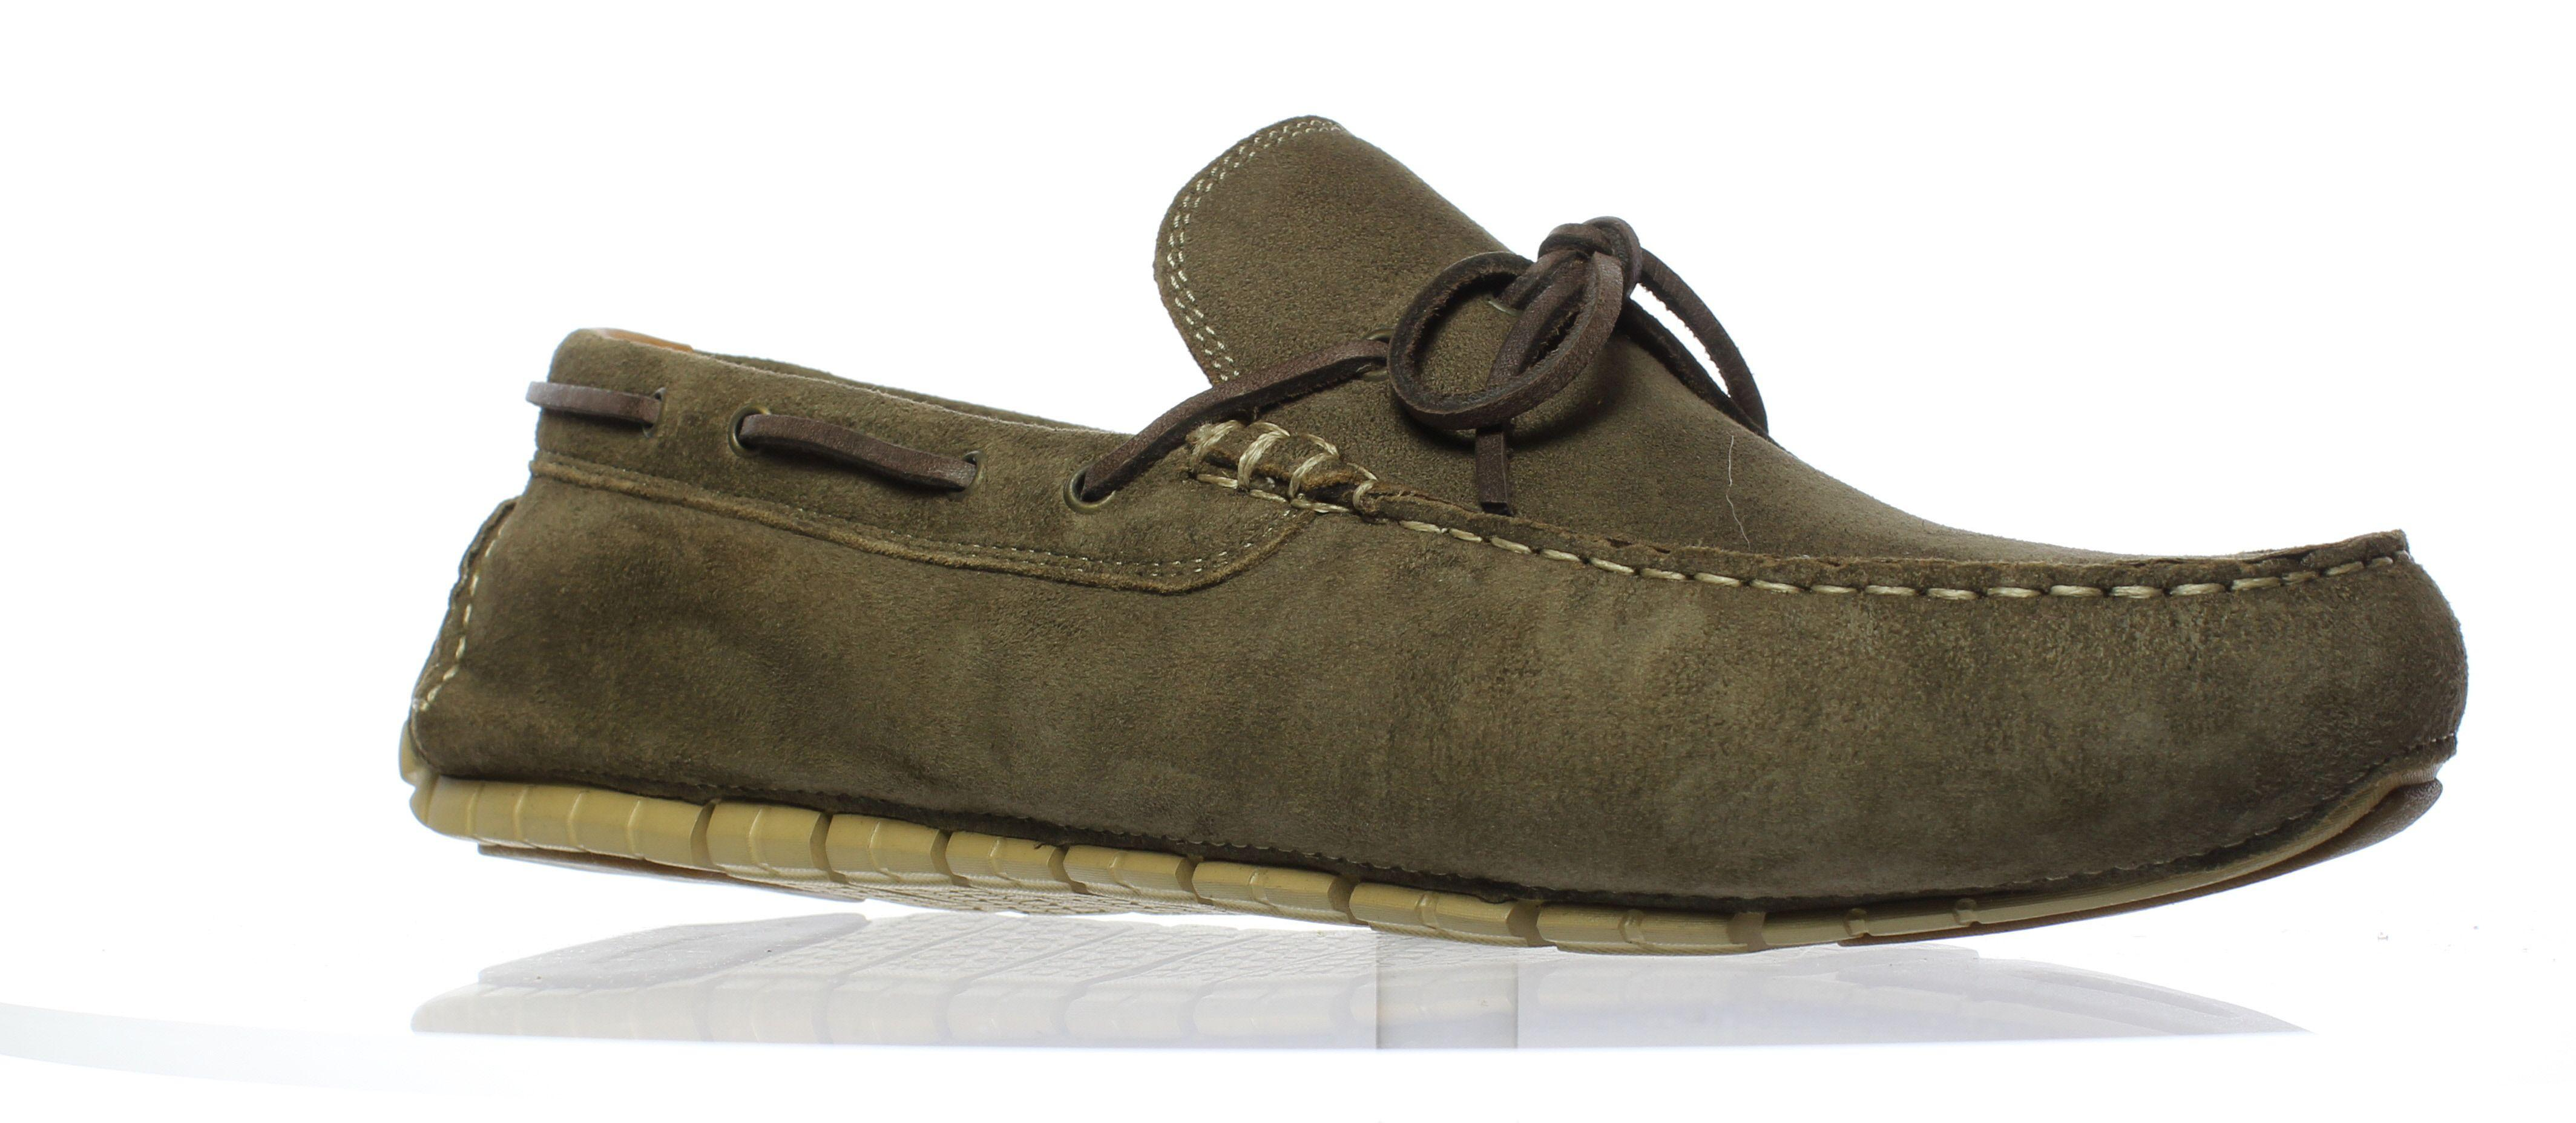 8e278d35e0c Lyst - Cole Haan Mens C25990 Loafers in Green for Men